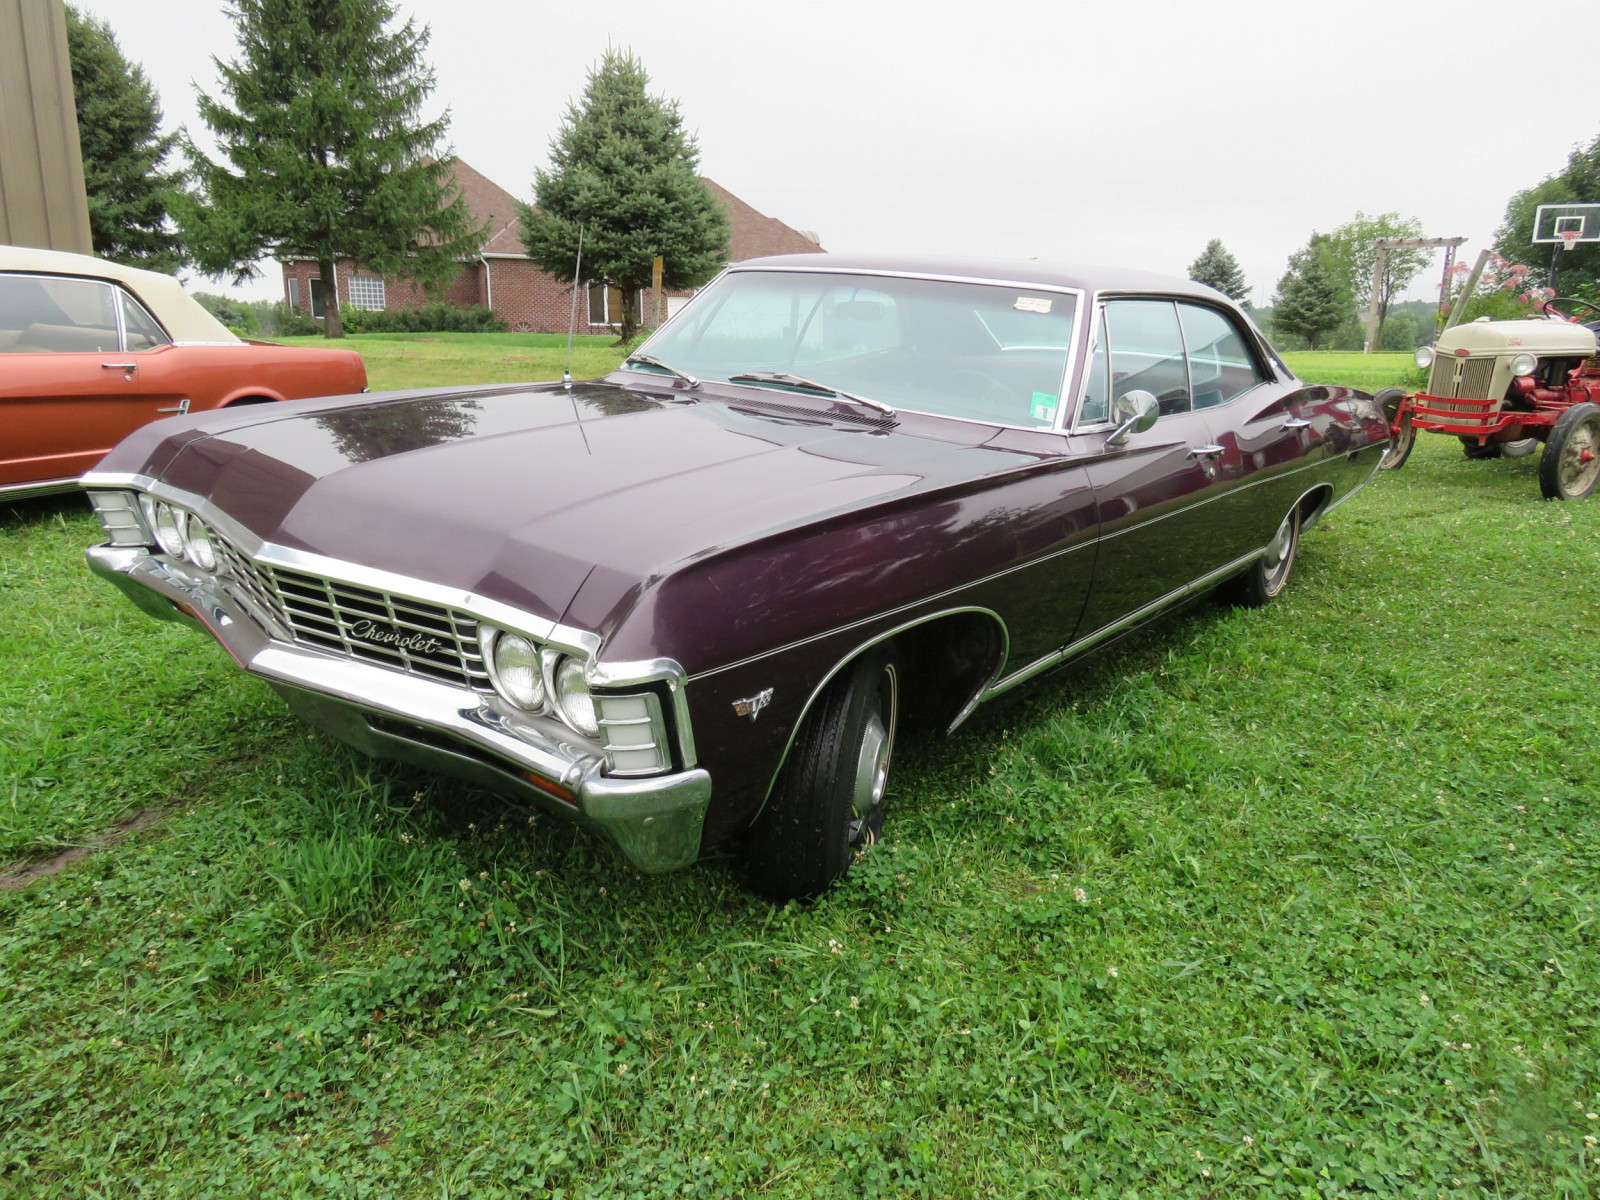 1967 Chevrolet Caprice 4dr HT - Image 3